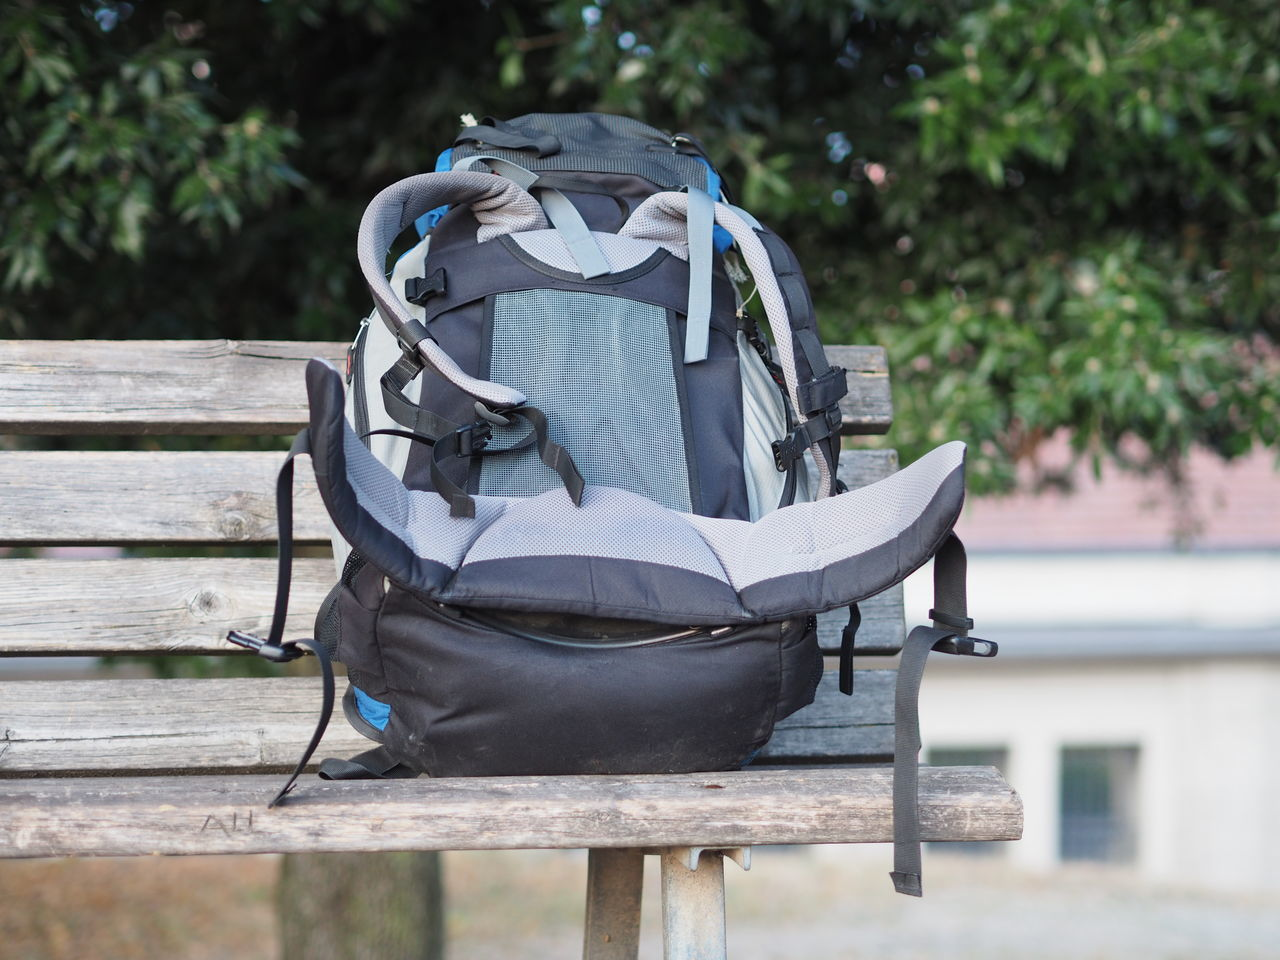 Backpack Backpack On Bench Bench No People Travel Traveling Travelpic